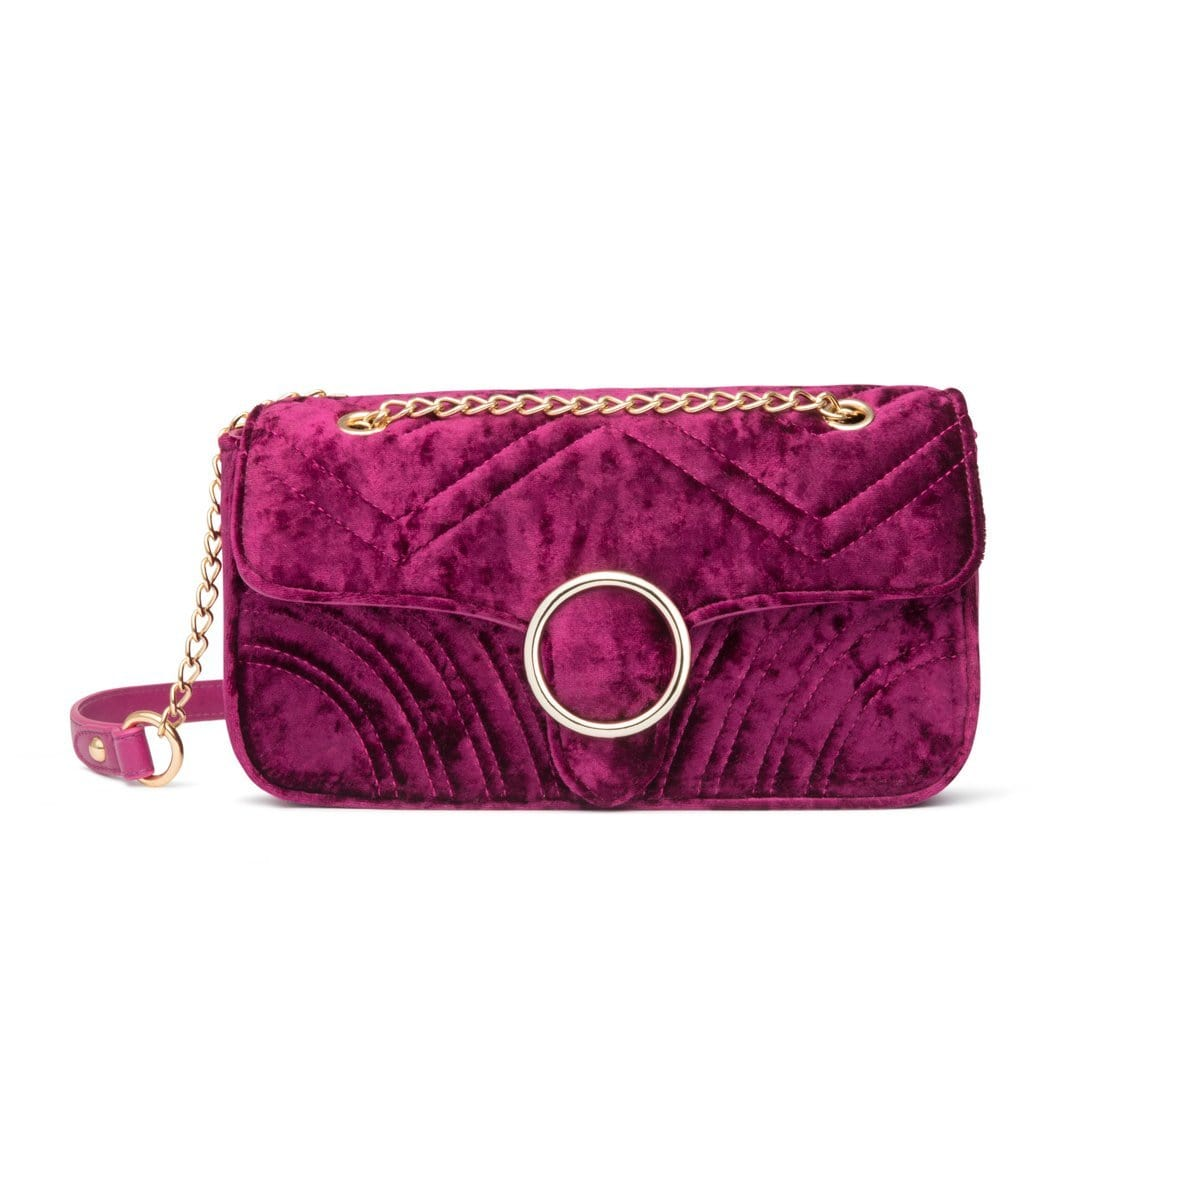 Raspberry Pink Gigi Handbag Gold